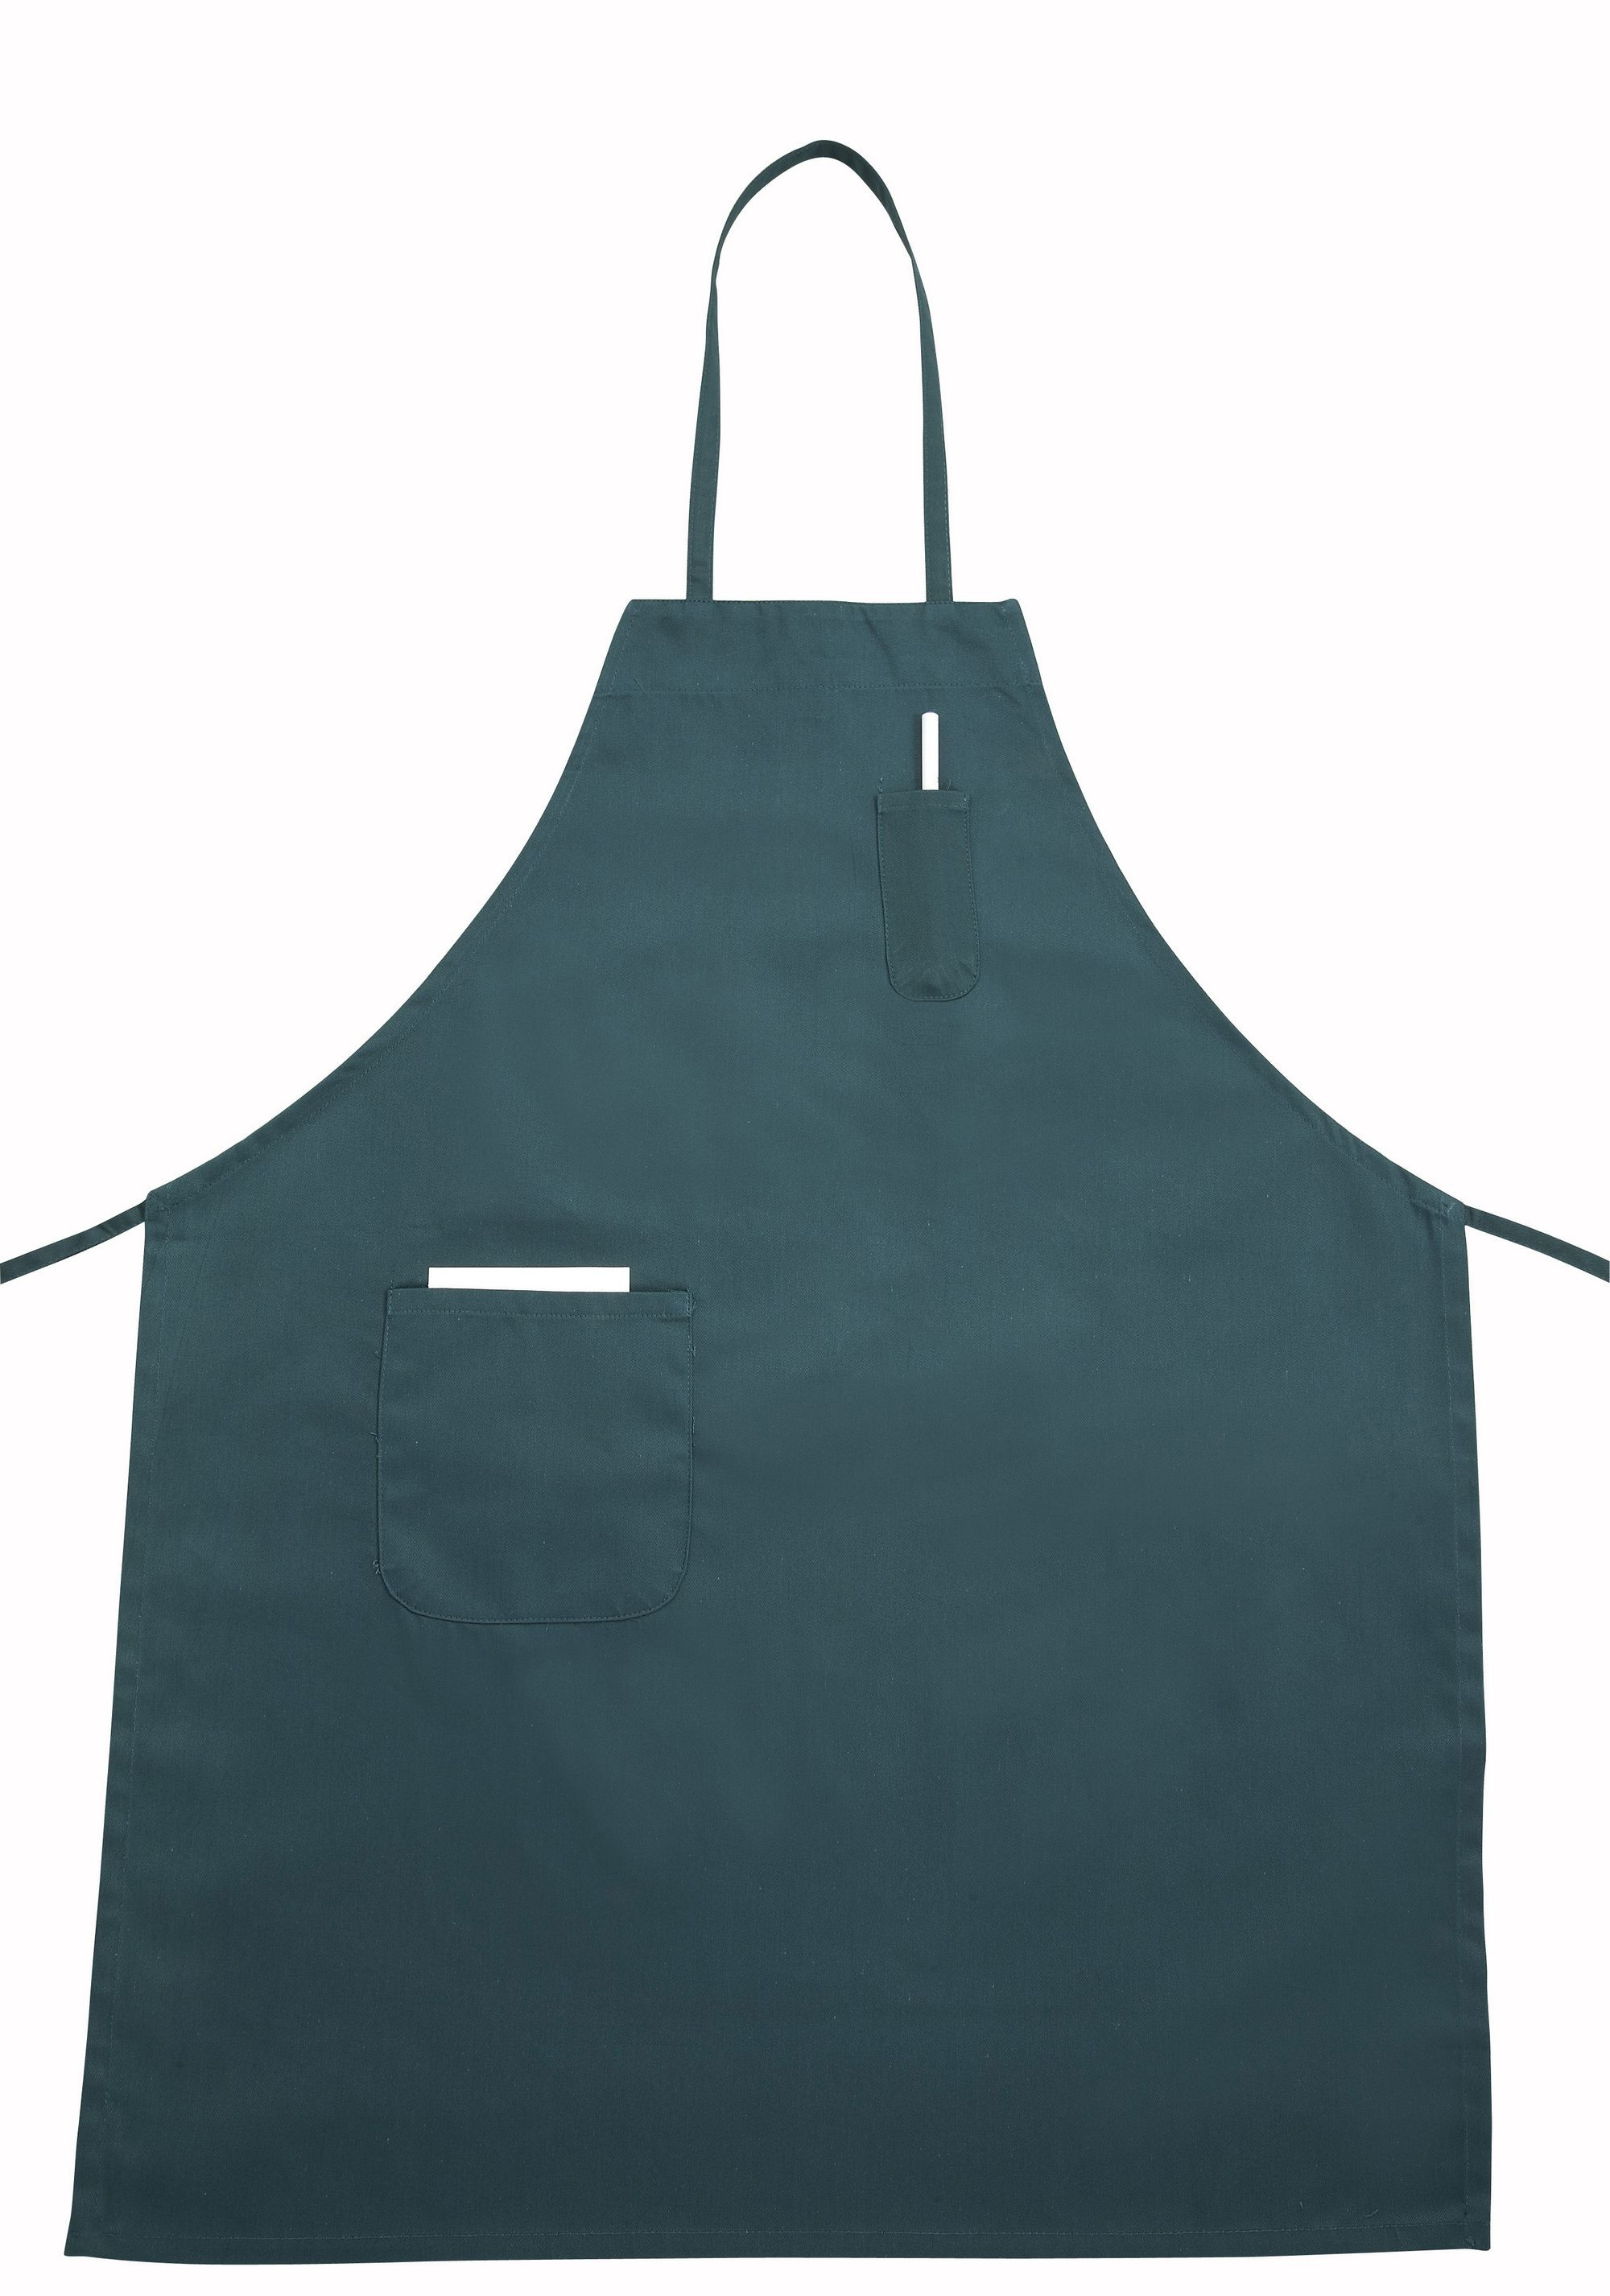 Green Full-Length Bib Apron With Pocket - 31 X 26